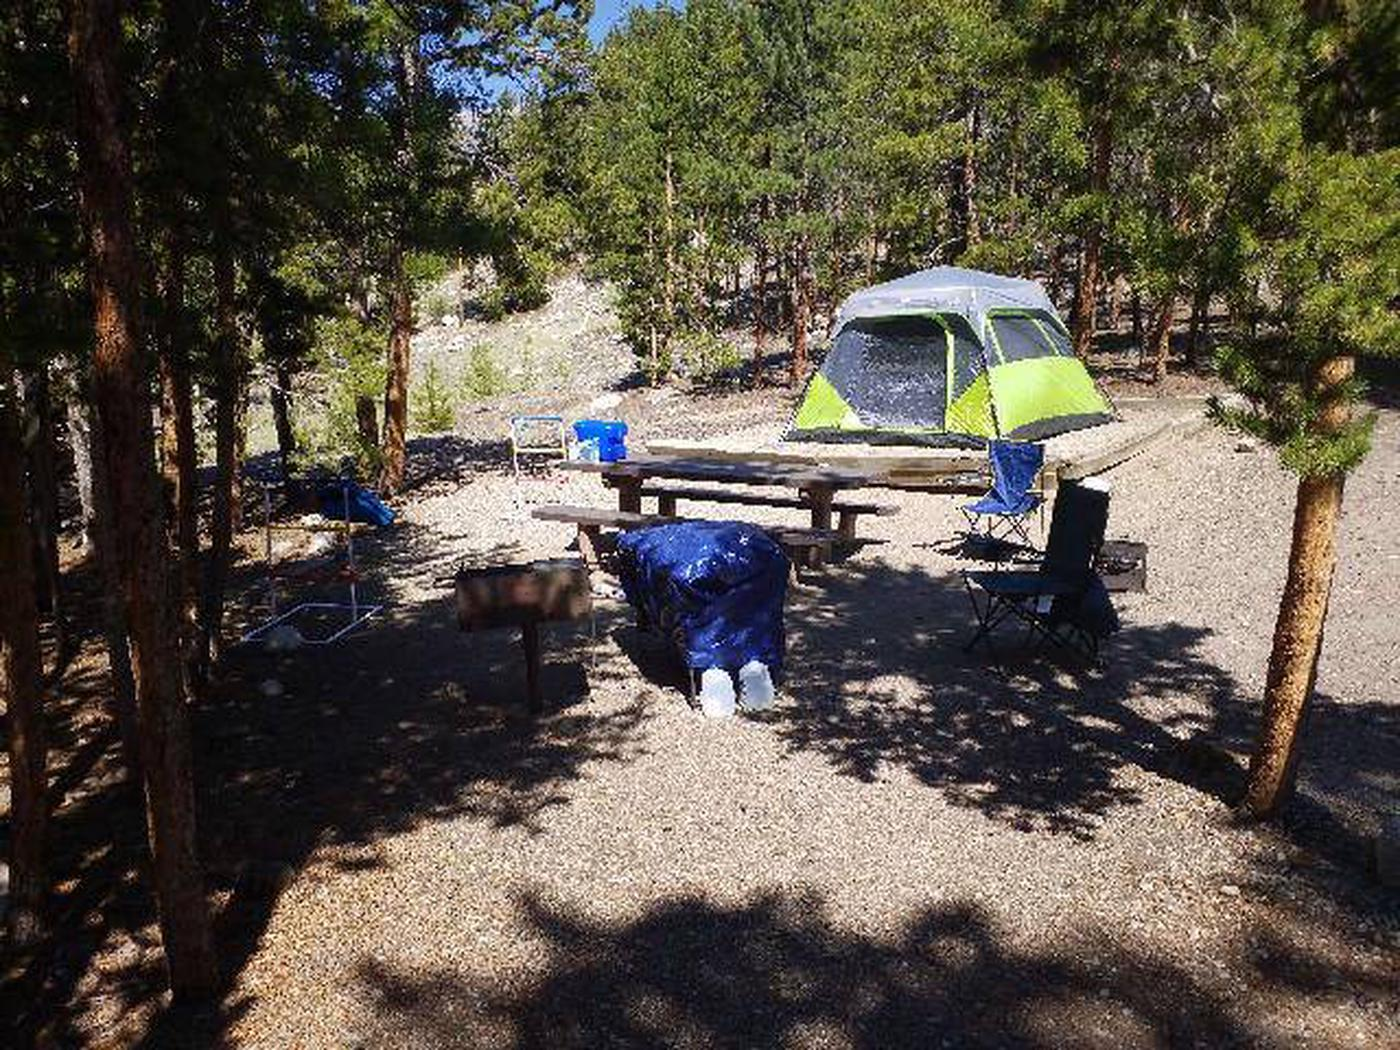 Lakeview Campground, site A8 camping area